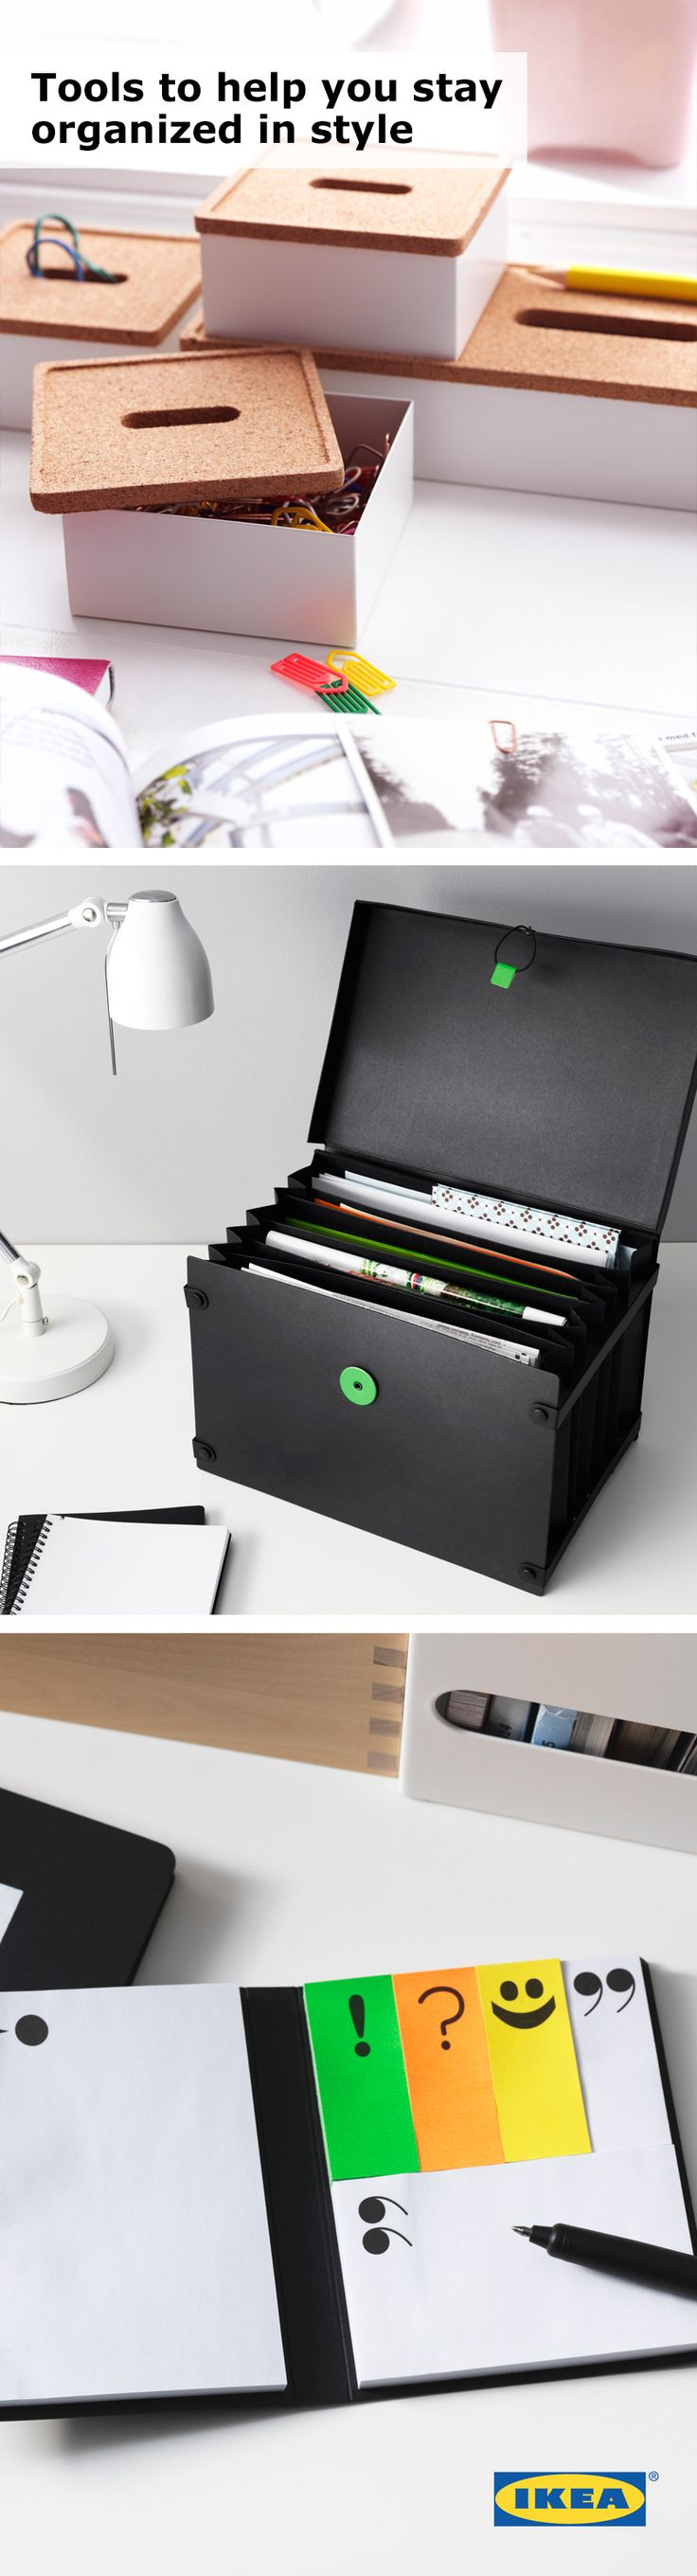 Stay organized in style! All of those college classes are no match for IKEA organization! Find all of the sticky notes and paper clips you need to keep you organized while you're studying. #IKEAStudyInStyle